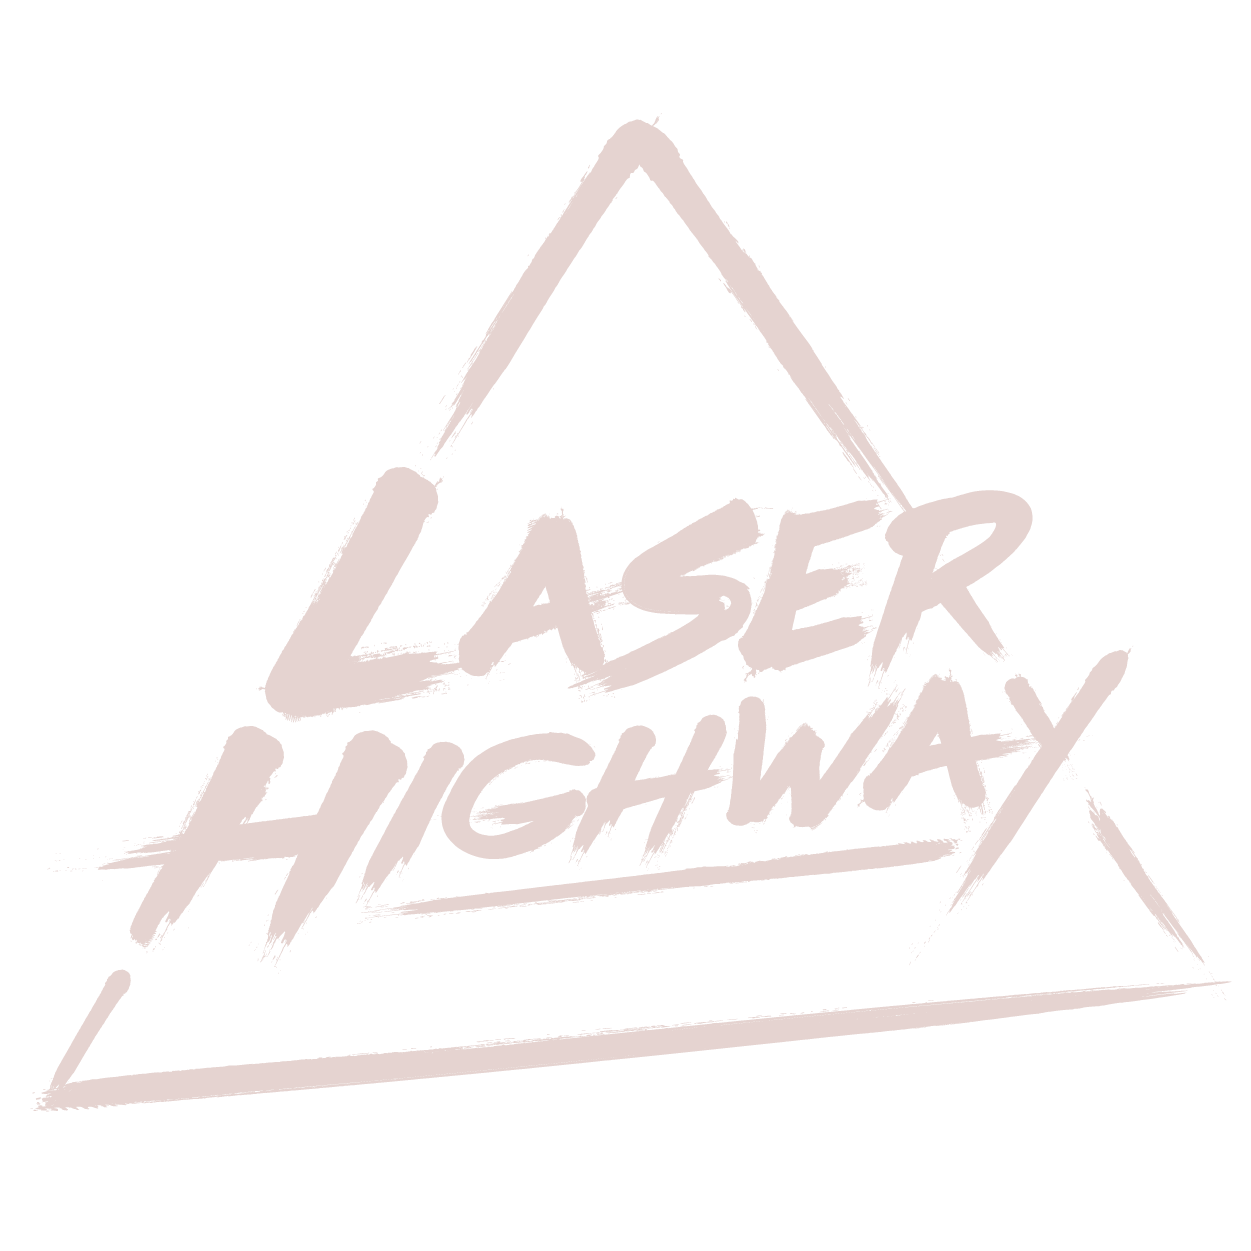 laser highway logo - the words laser highway in brushed lettering and the outline of a triangle in the same stylised manner